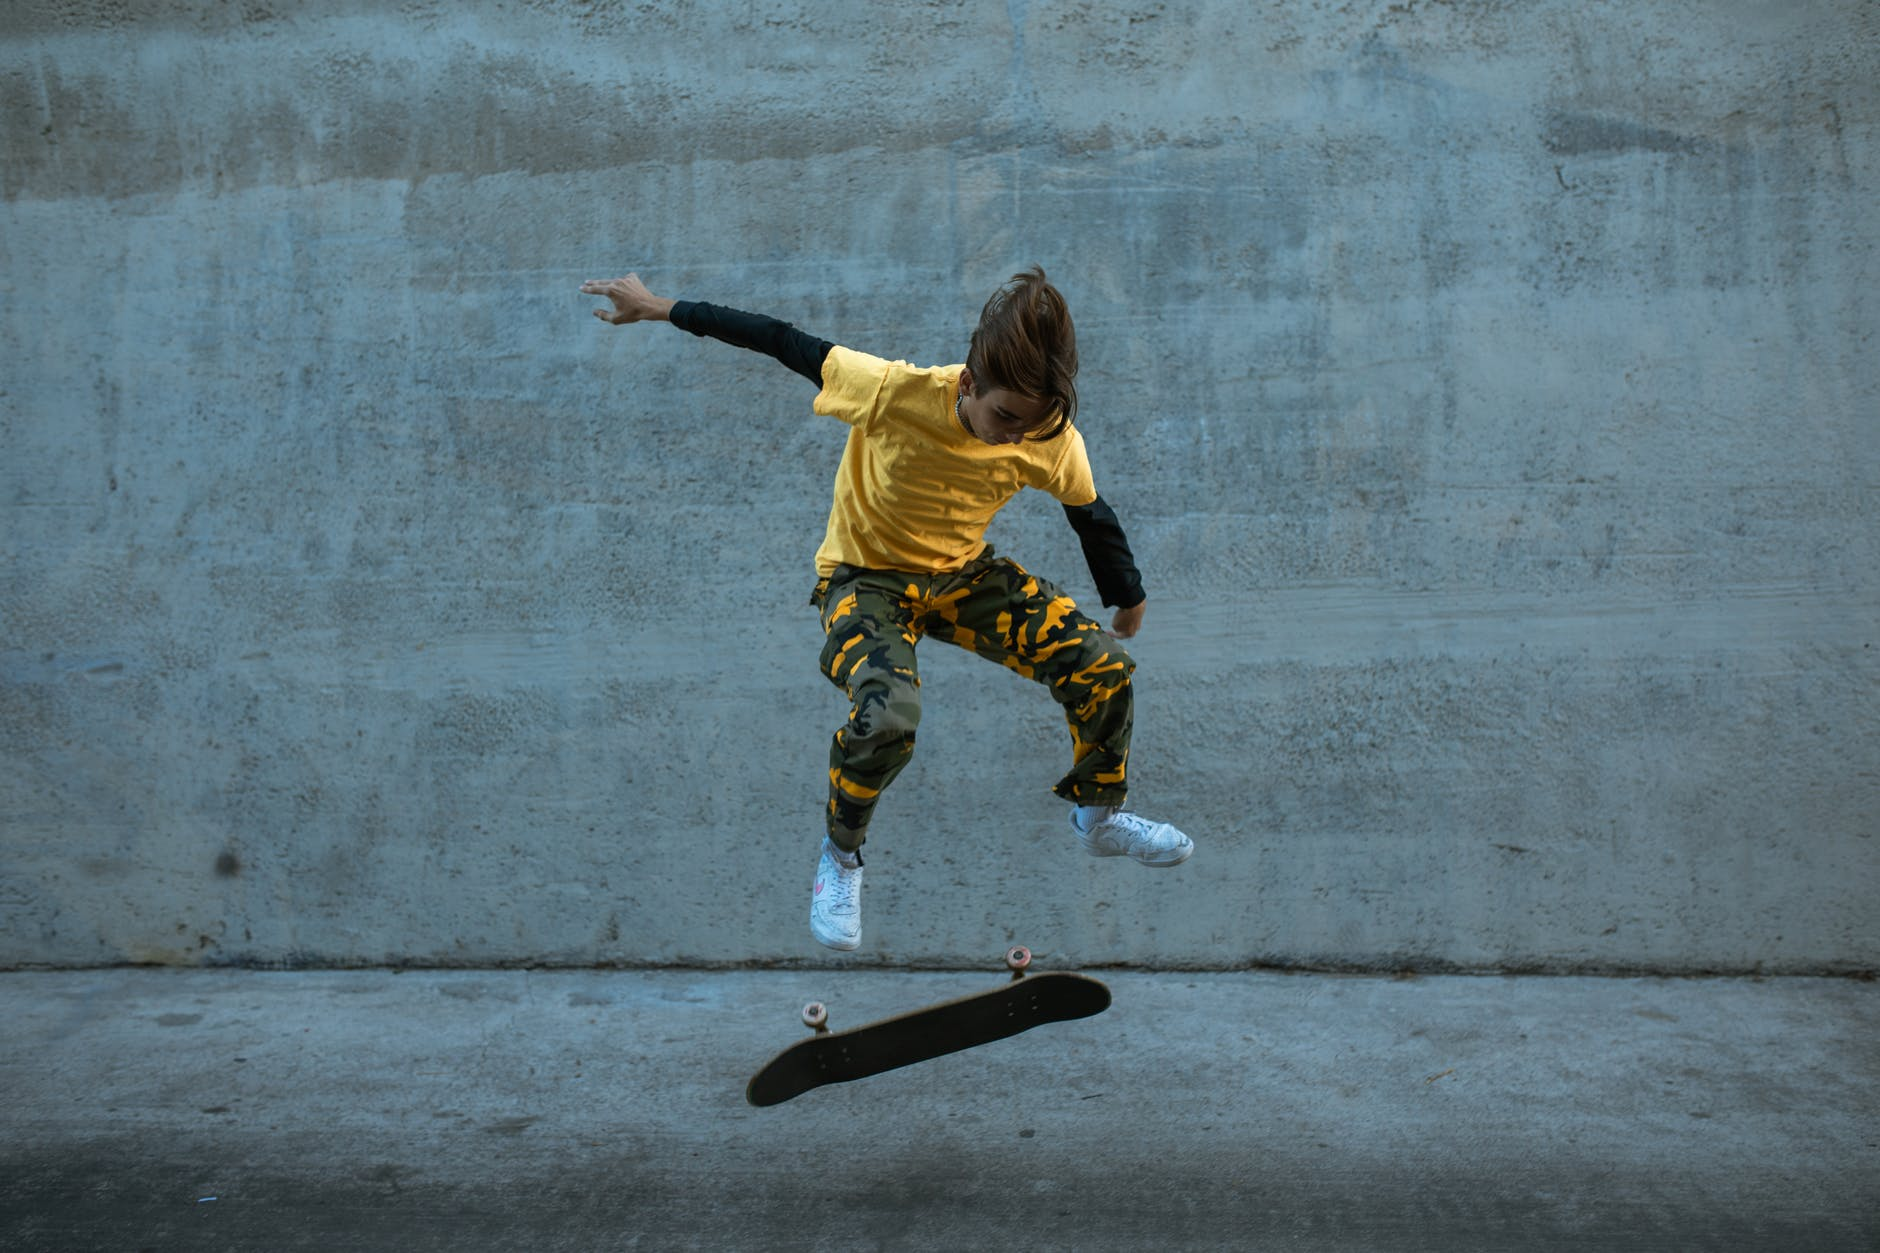 person in yellow shirt jumping on the skateboard